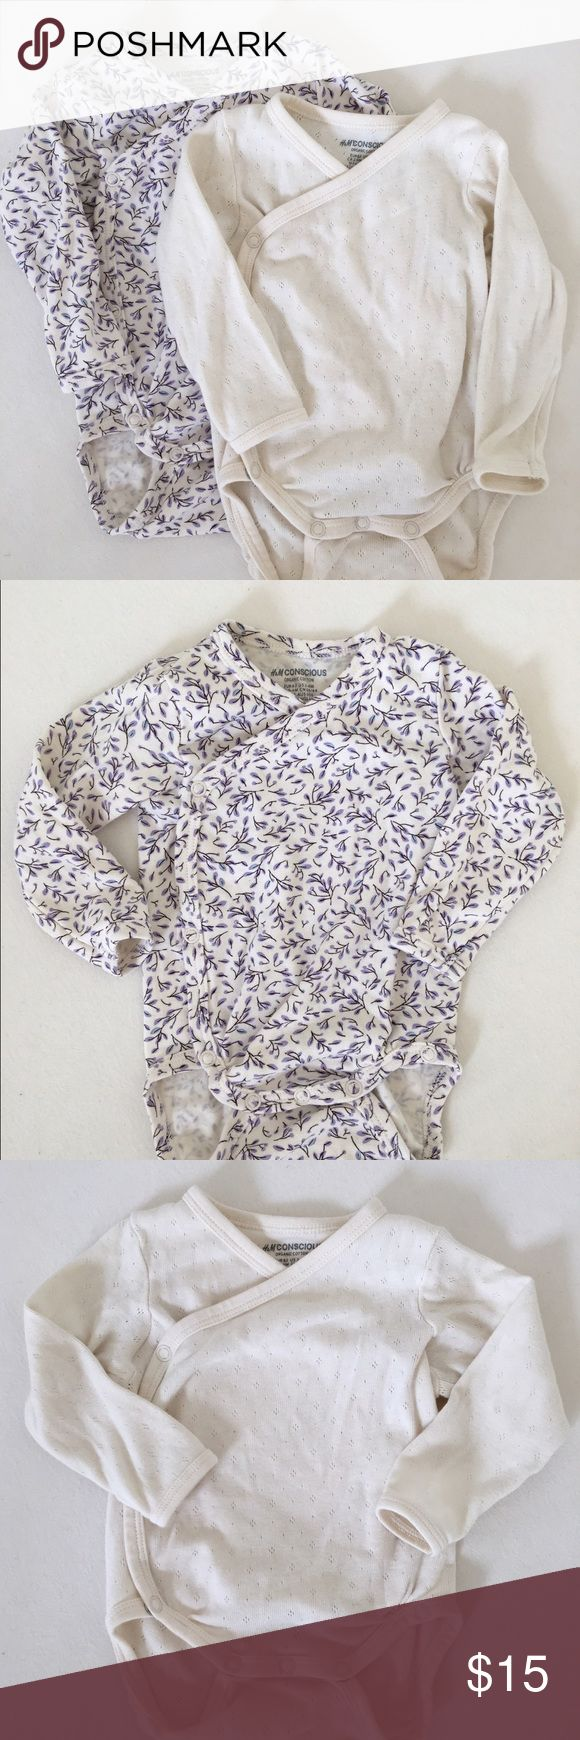 H&M | Bundle of organic long sleeve onesies Two long sleeve side snap onesies - purple floral and cream. Cream onesie is Pointelle, floral is solid cotton. H&M One Pieces Bodysuits